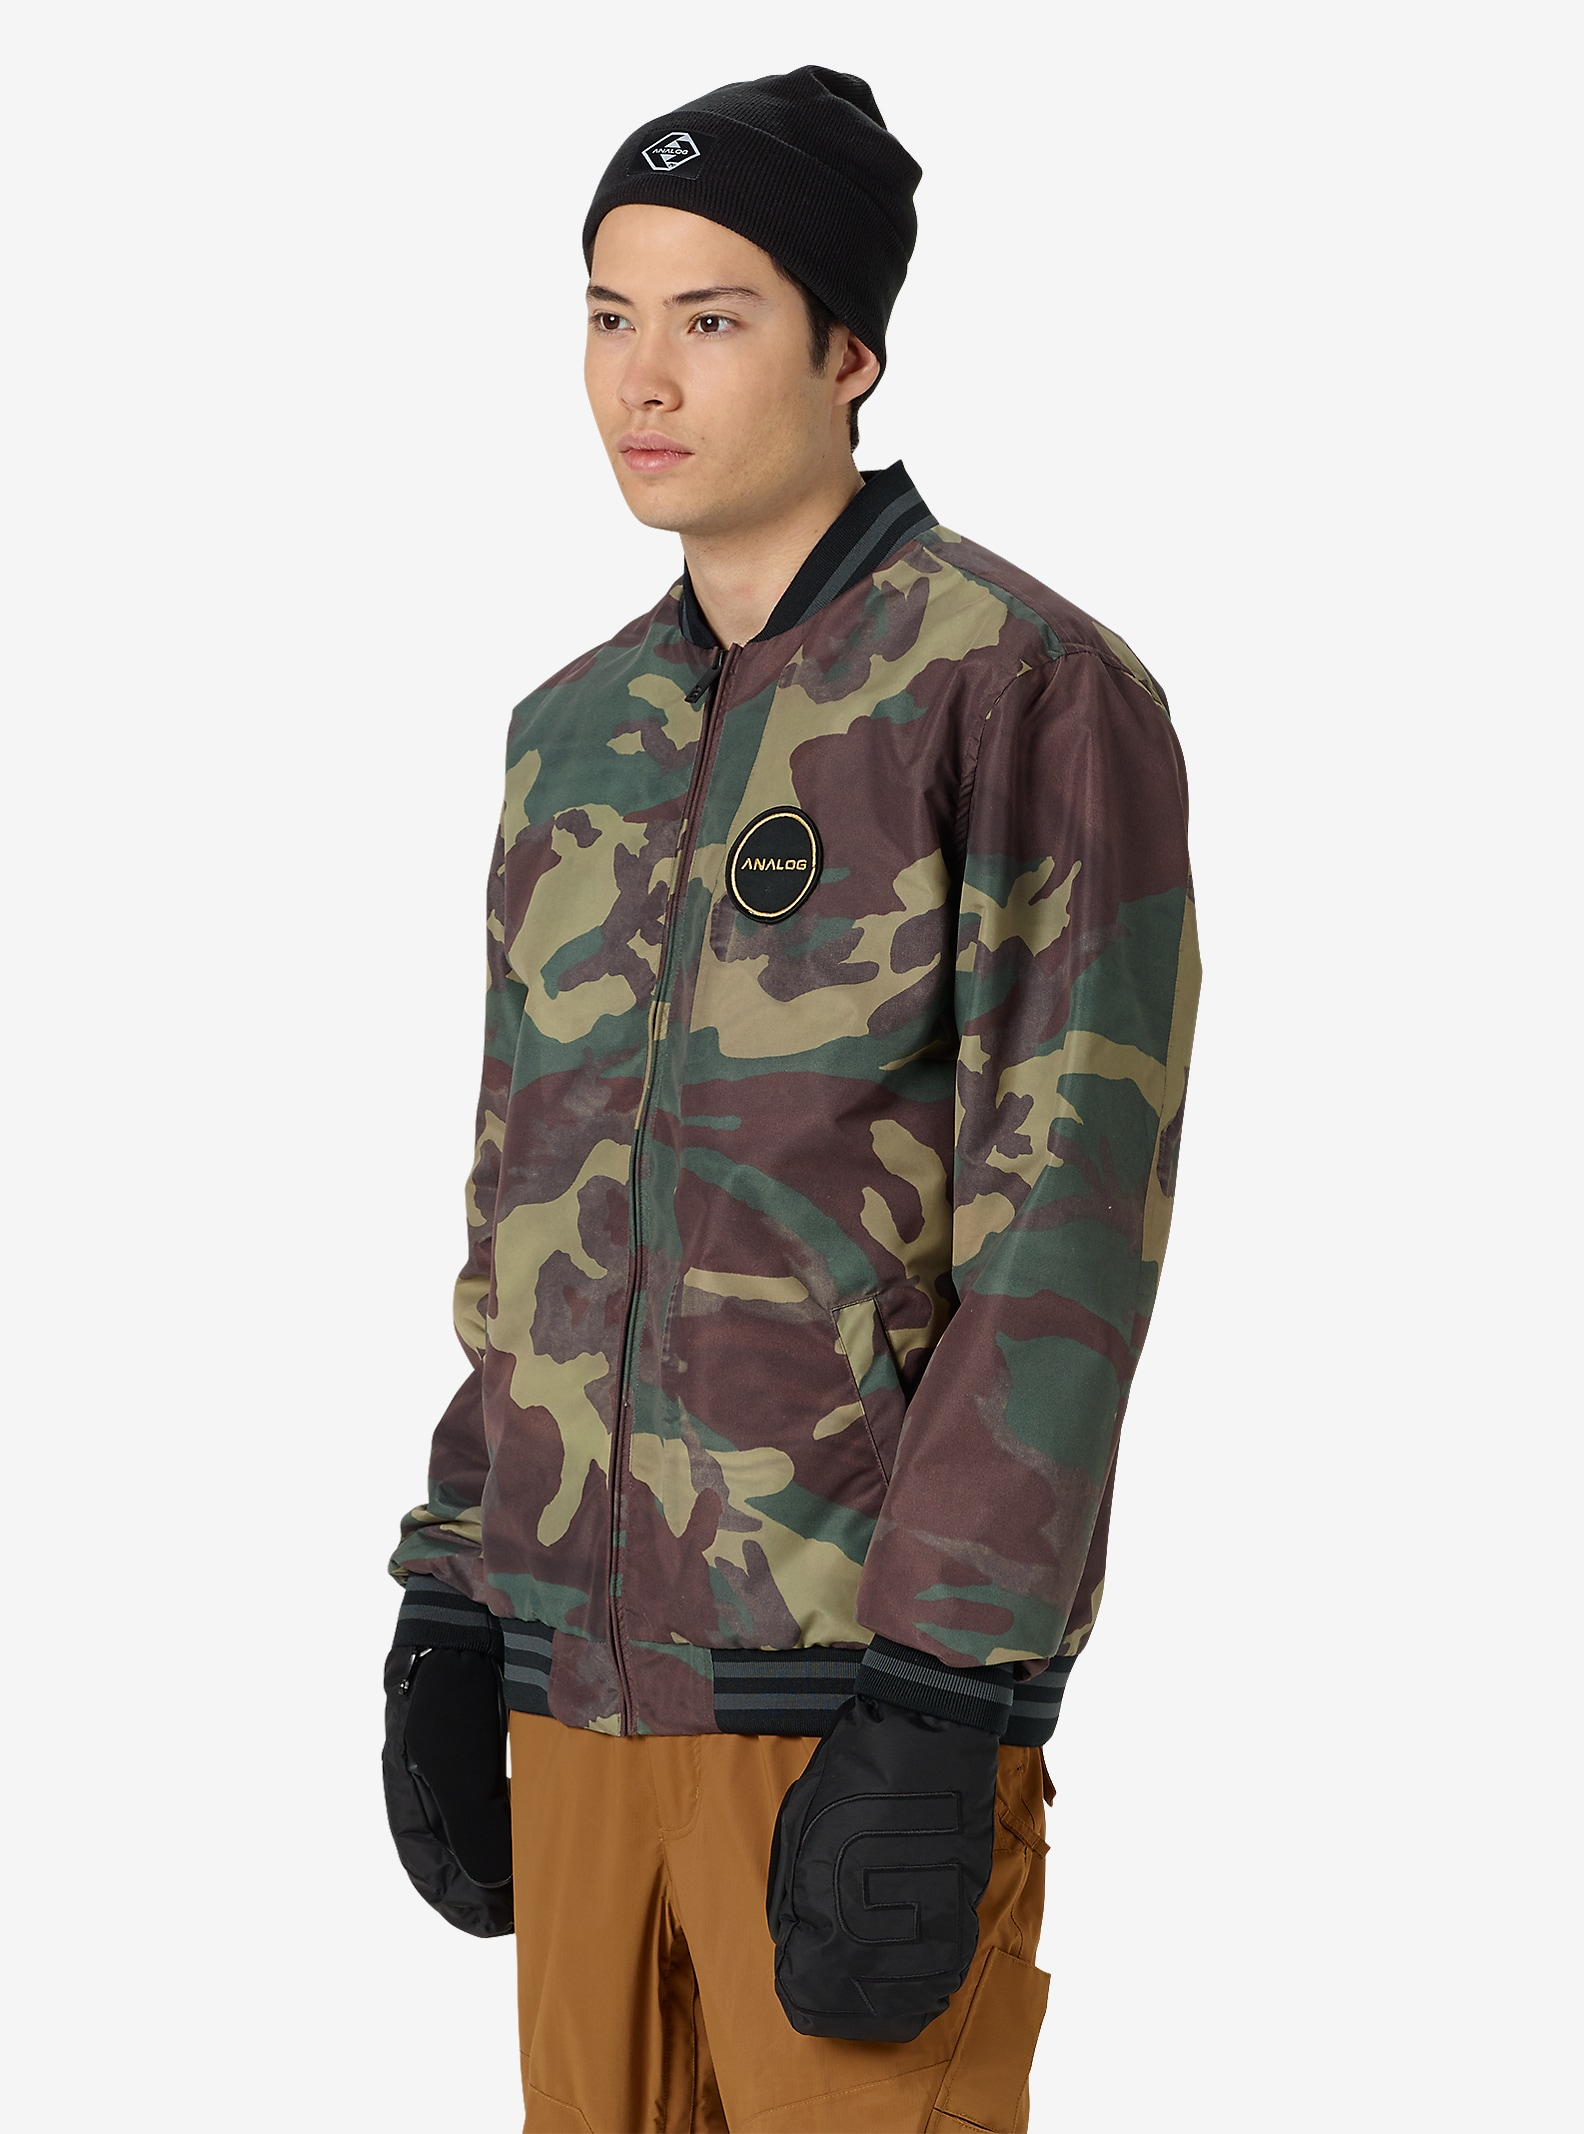 Analog League Jacket shown in Surplus Camo